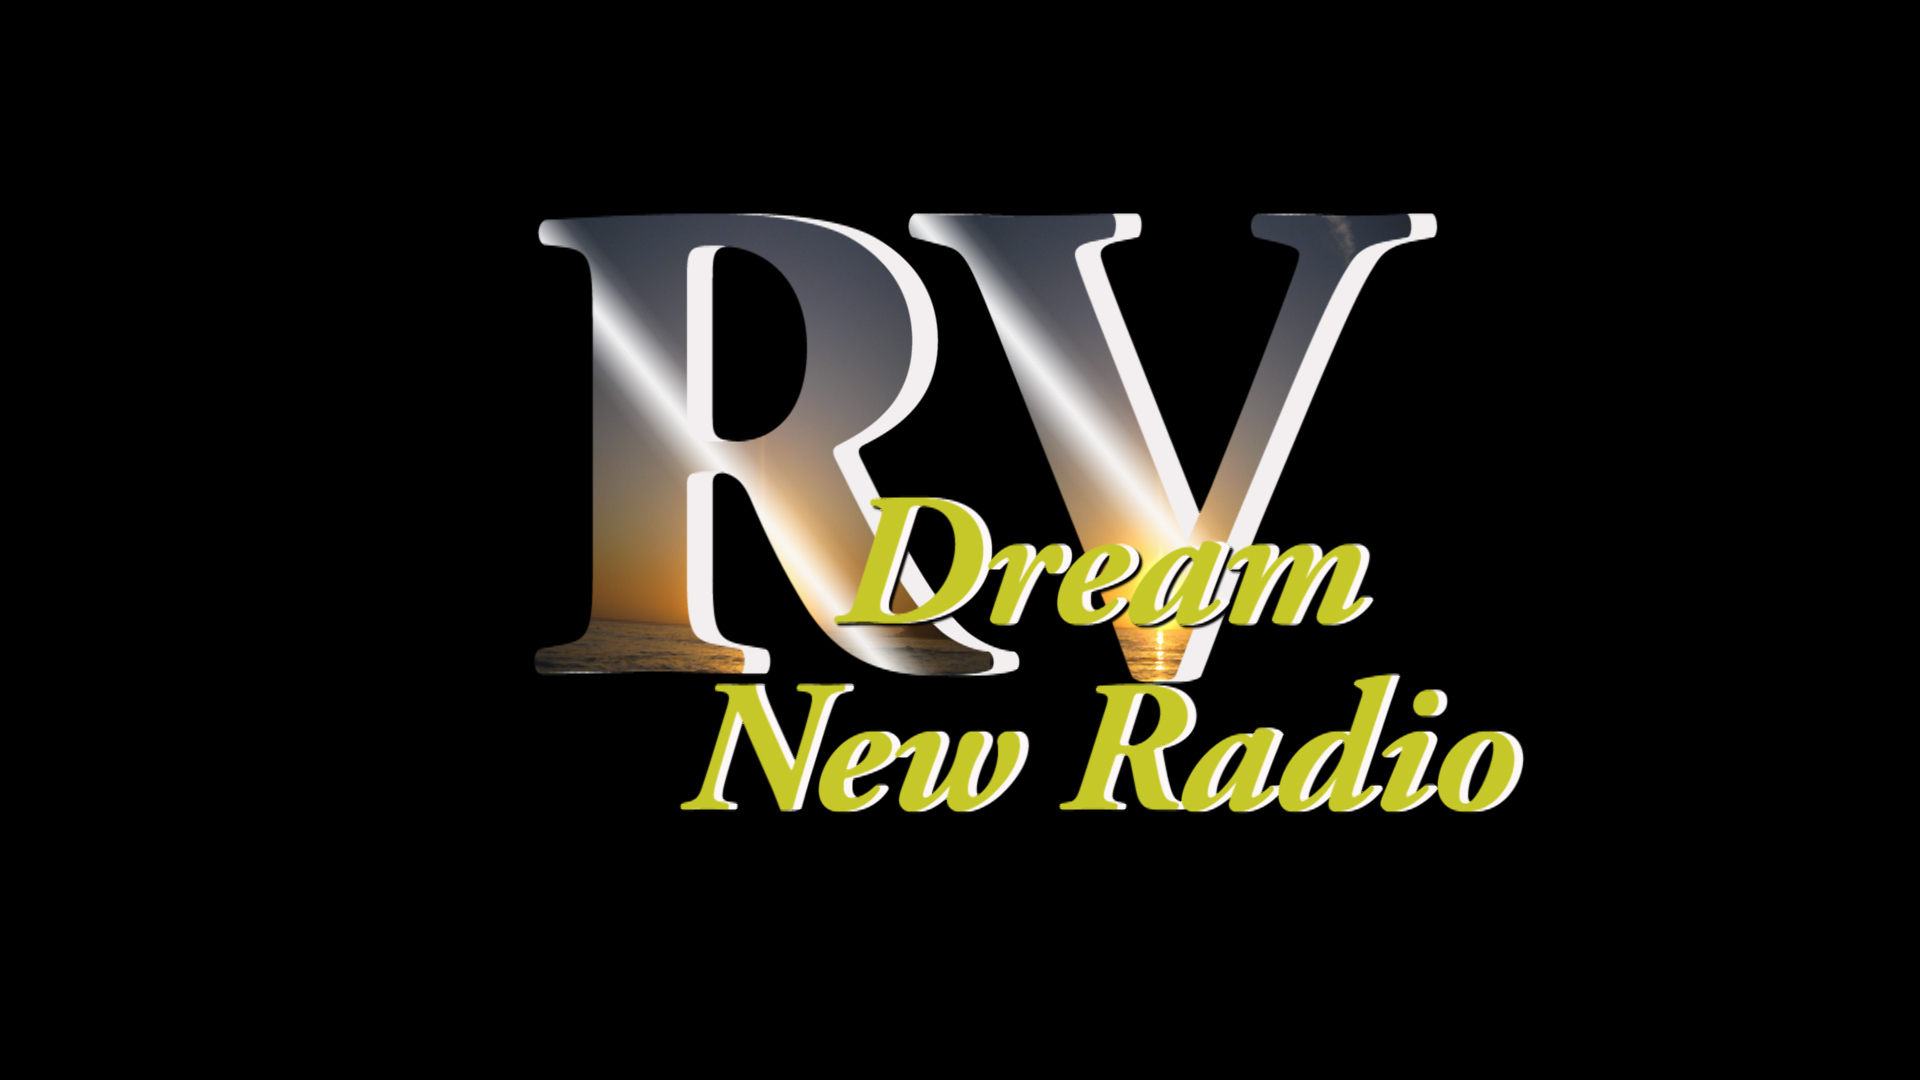 The Free RV Dream Podcast! Episode 1 is on the Air! -The Basics and Forward Edge of RVing